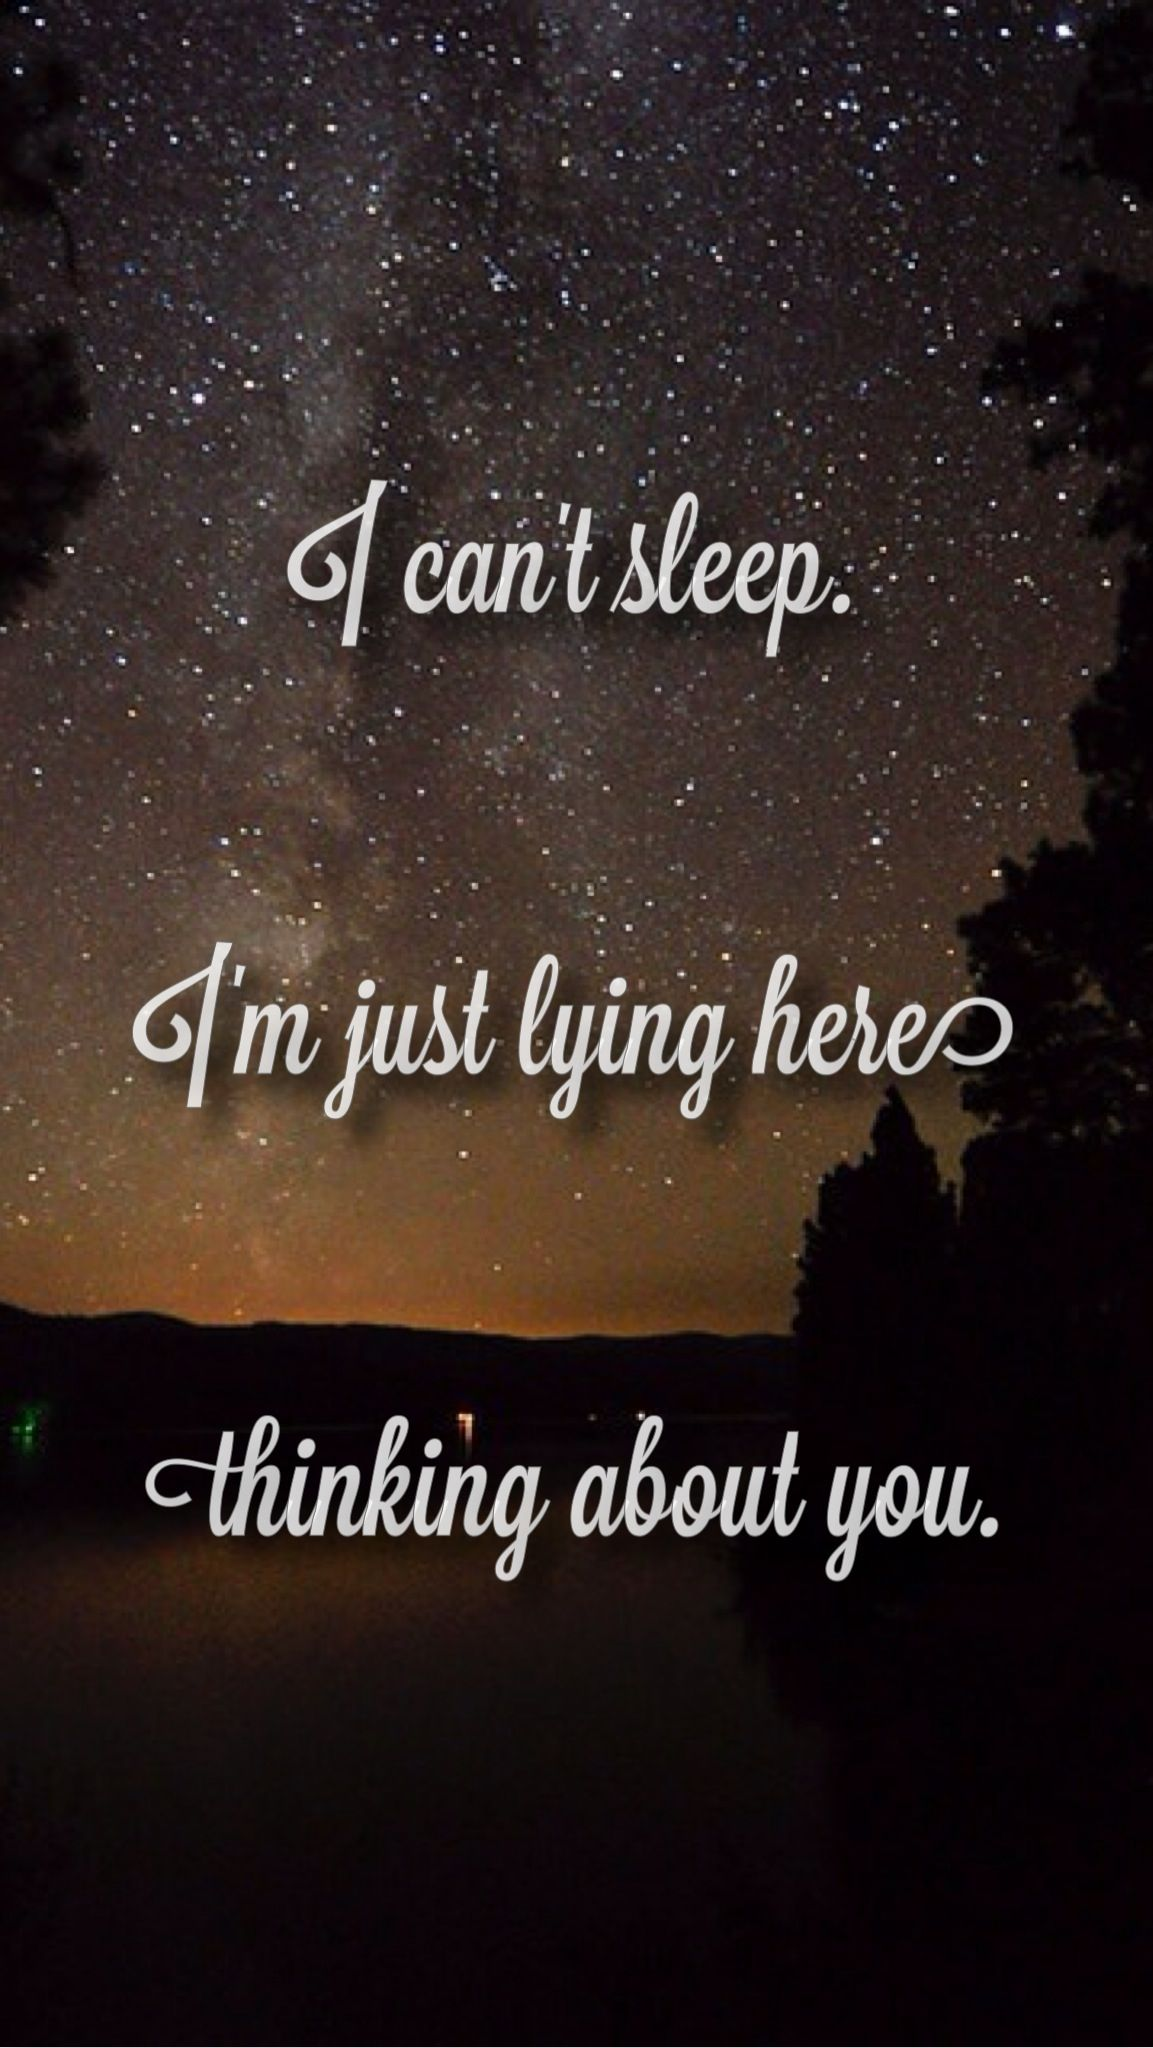 Quotes about being sick in bed funny quotes about being sick in bed - I Am Trying To Sleep Because I Am Honestly Feeling Sick Right Now It S Not Your Fault Though I Am Going To Try To Sleep Again